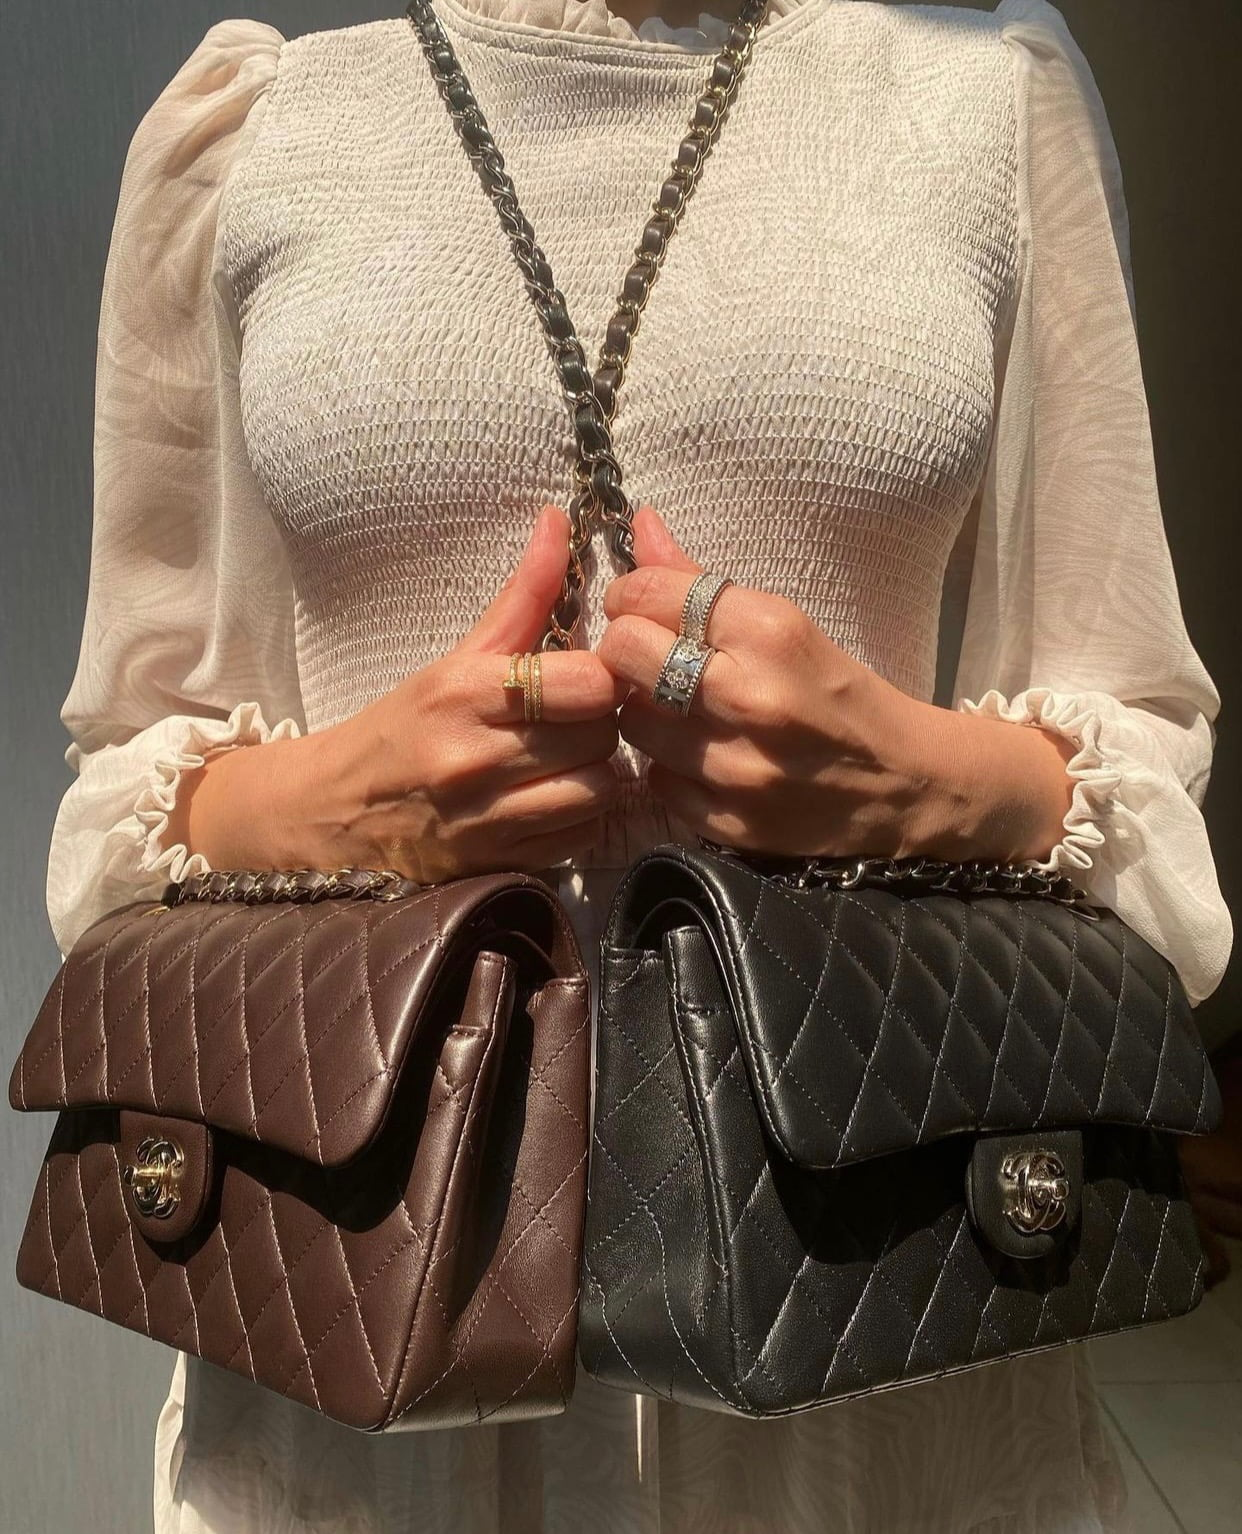 Chanel Bag Prices Article Picture